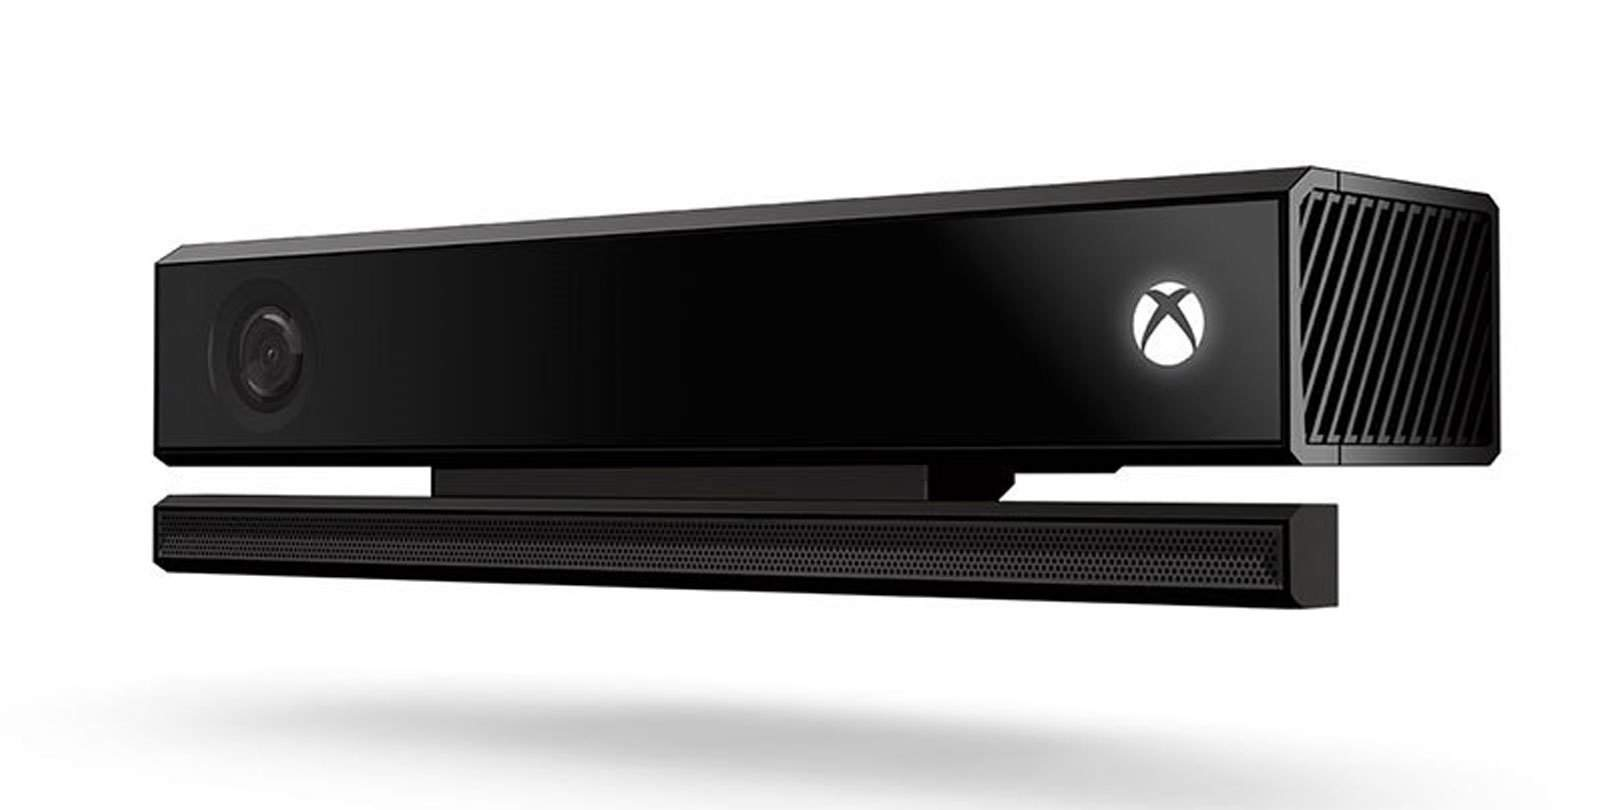 Vamers - Review - Microsoft's Xbox One Review - Kinect 2.0 in Full